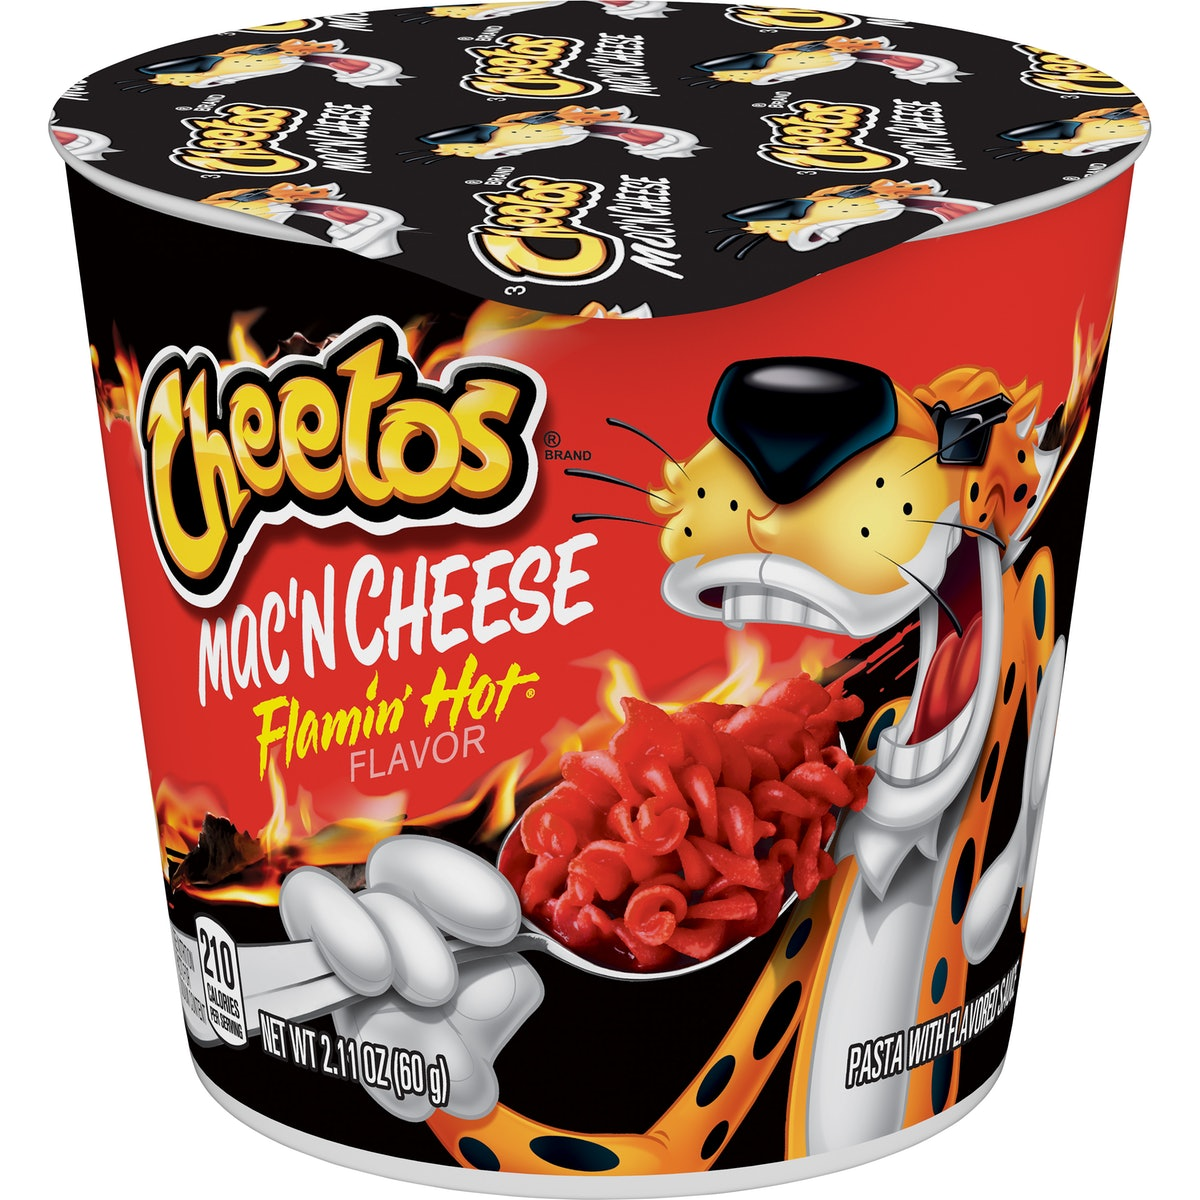 Here's where to get the new Cheetos Mac 'N Cheese for a spicy, cheesy bite.